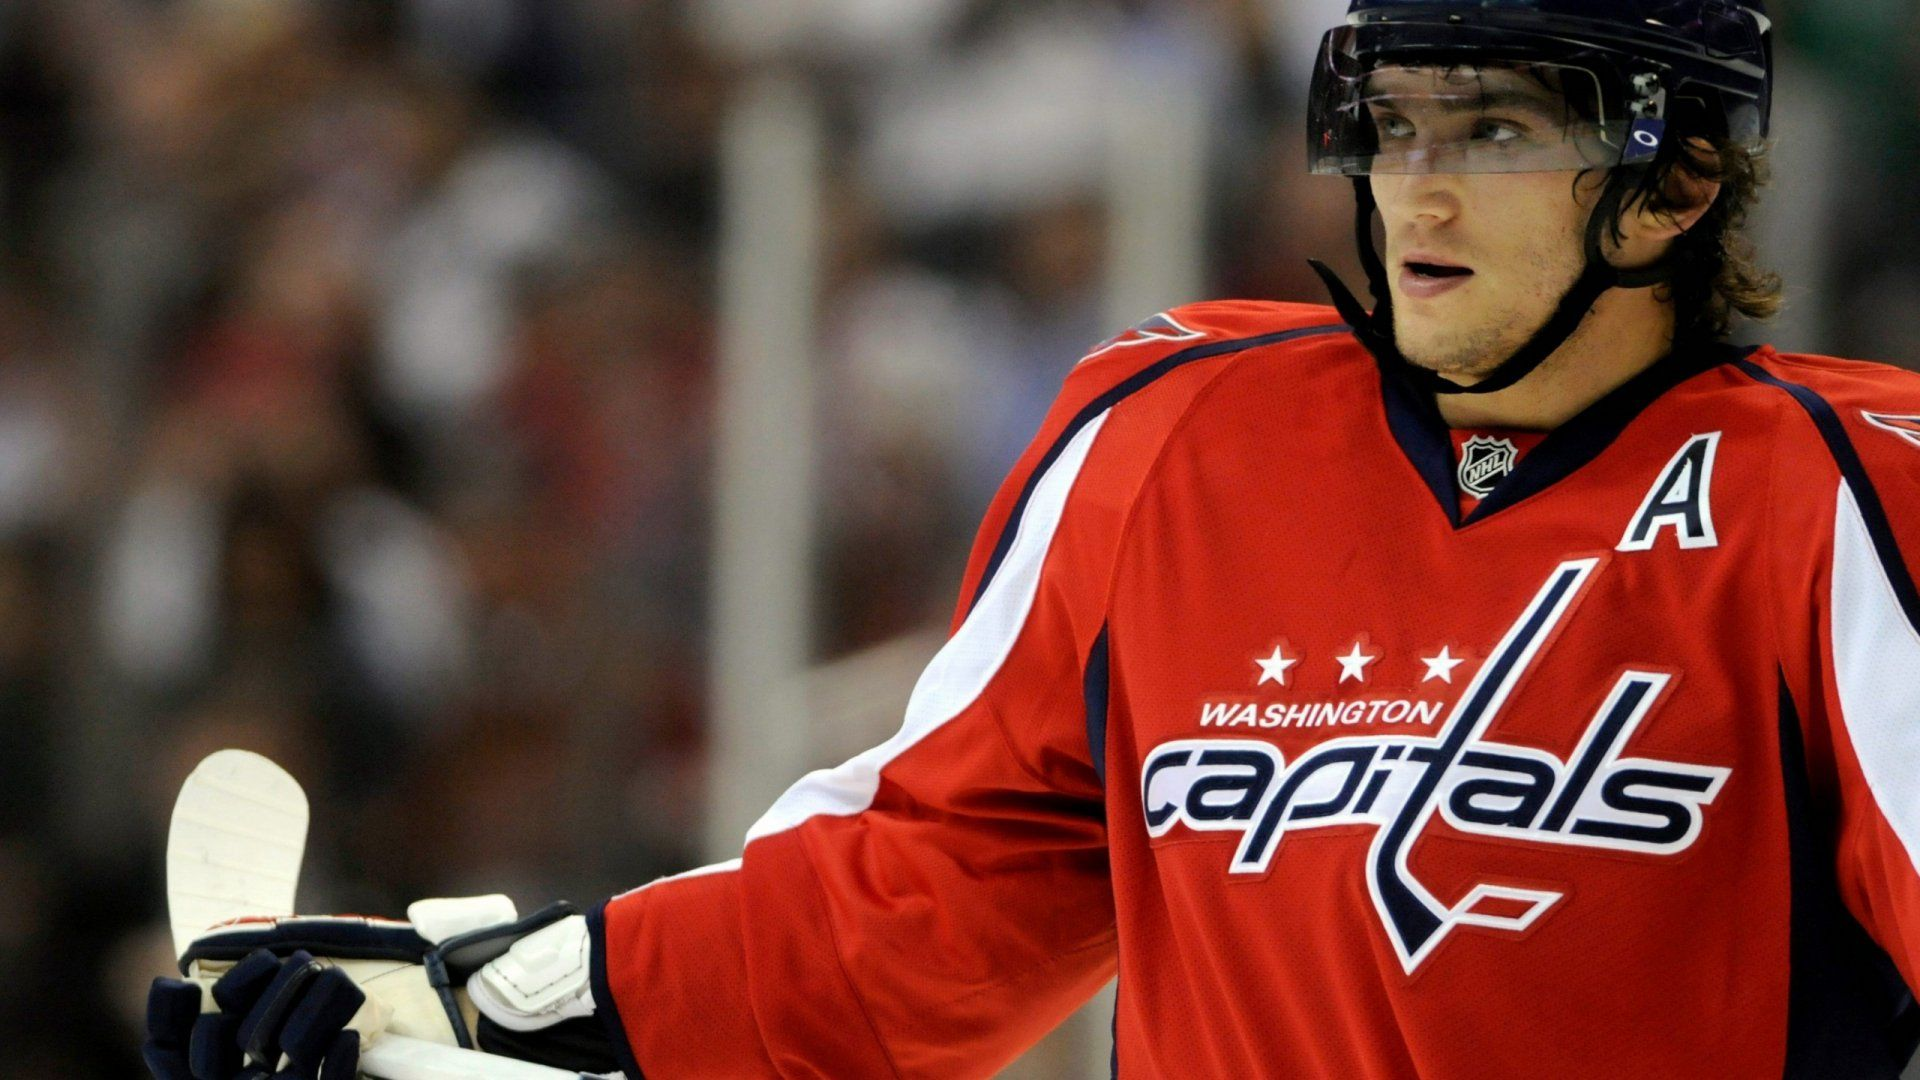 Ovechkin Washington Capitals 1